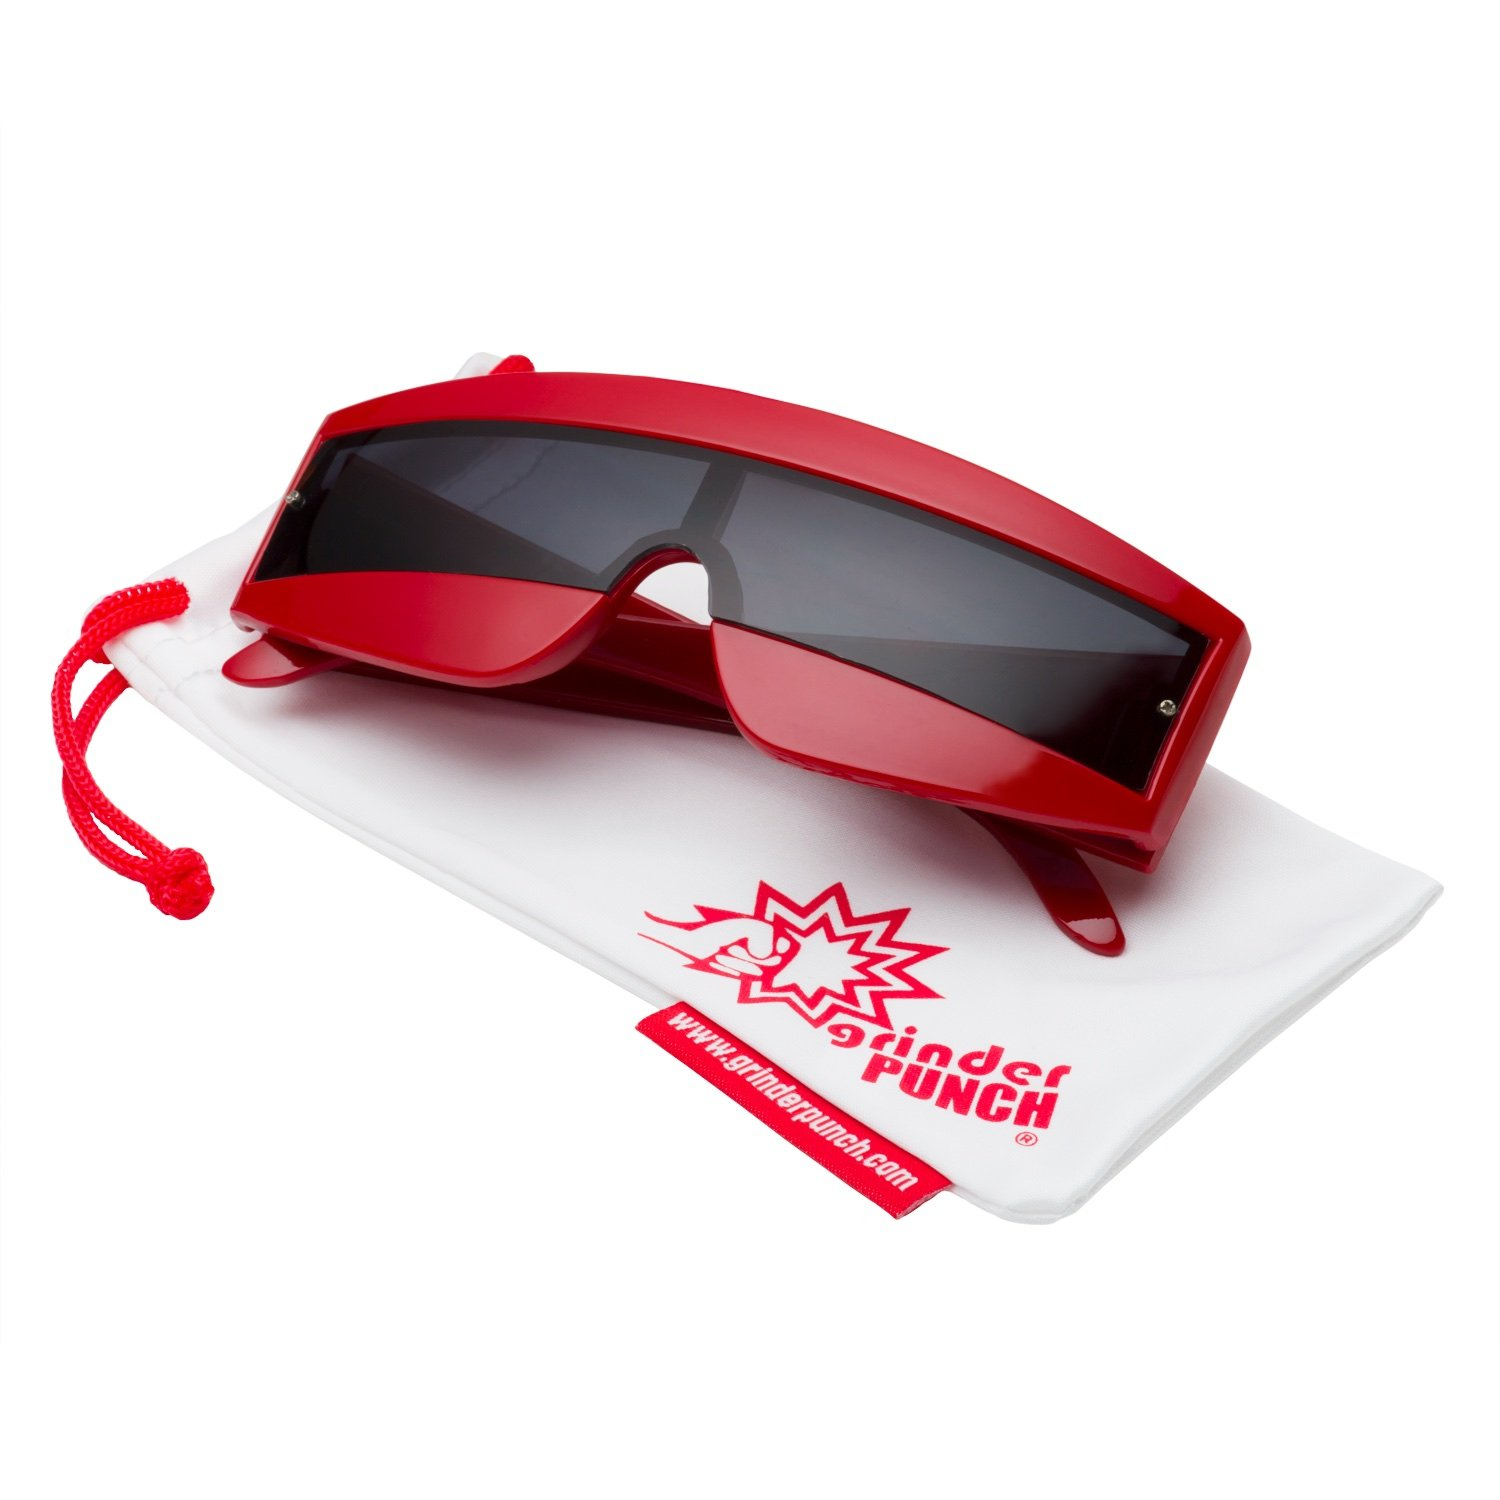 Amazon.com: grinderPUNCH Futuristic Cyclops Color Mirrored Lens ...